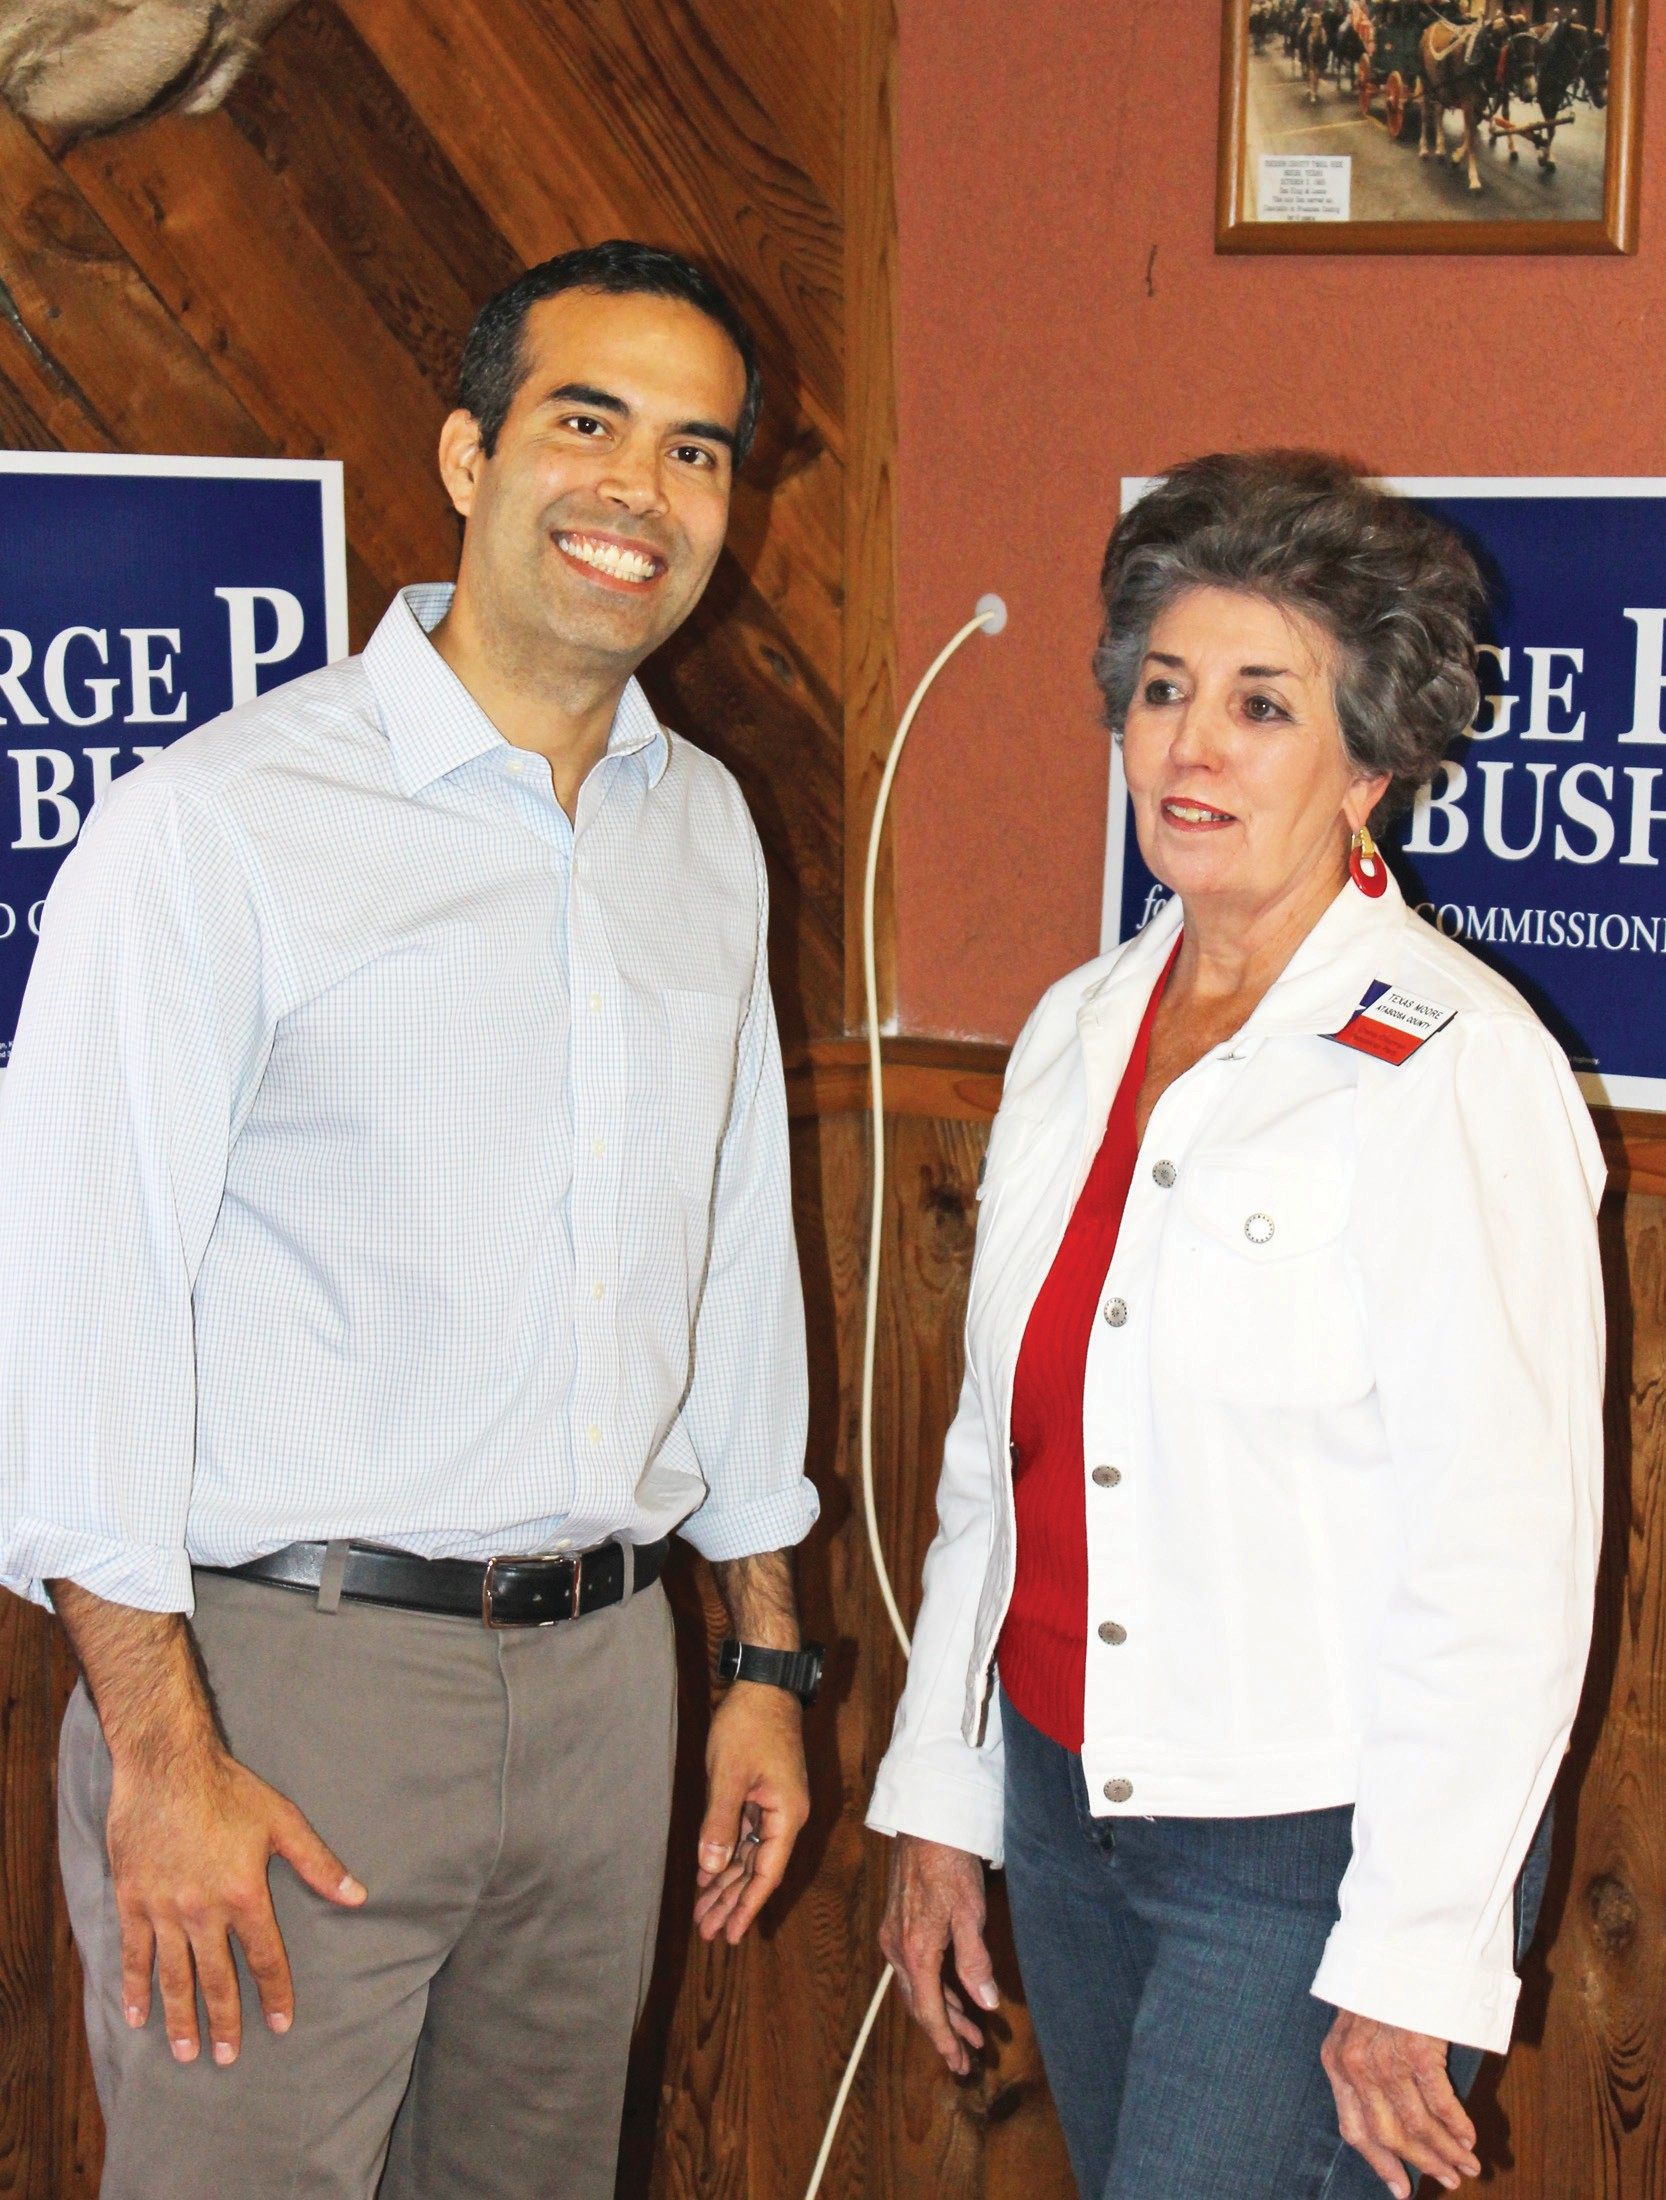 Texas Land Commissioner candidate George P. Bush meets with Atascosa County Republican Chair Texas Moore.